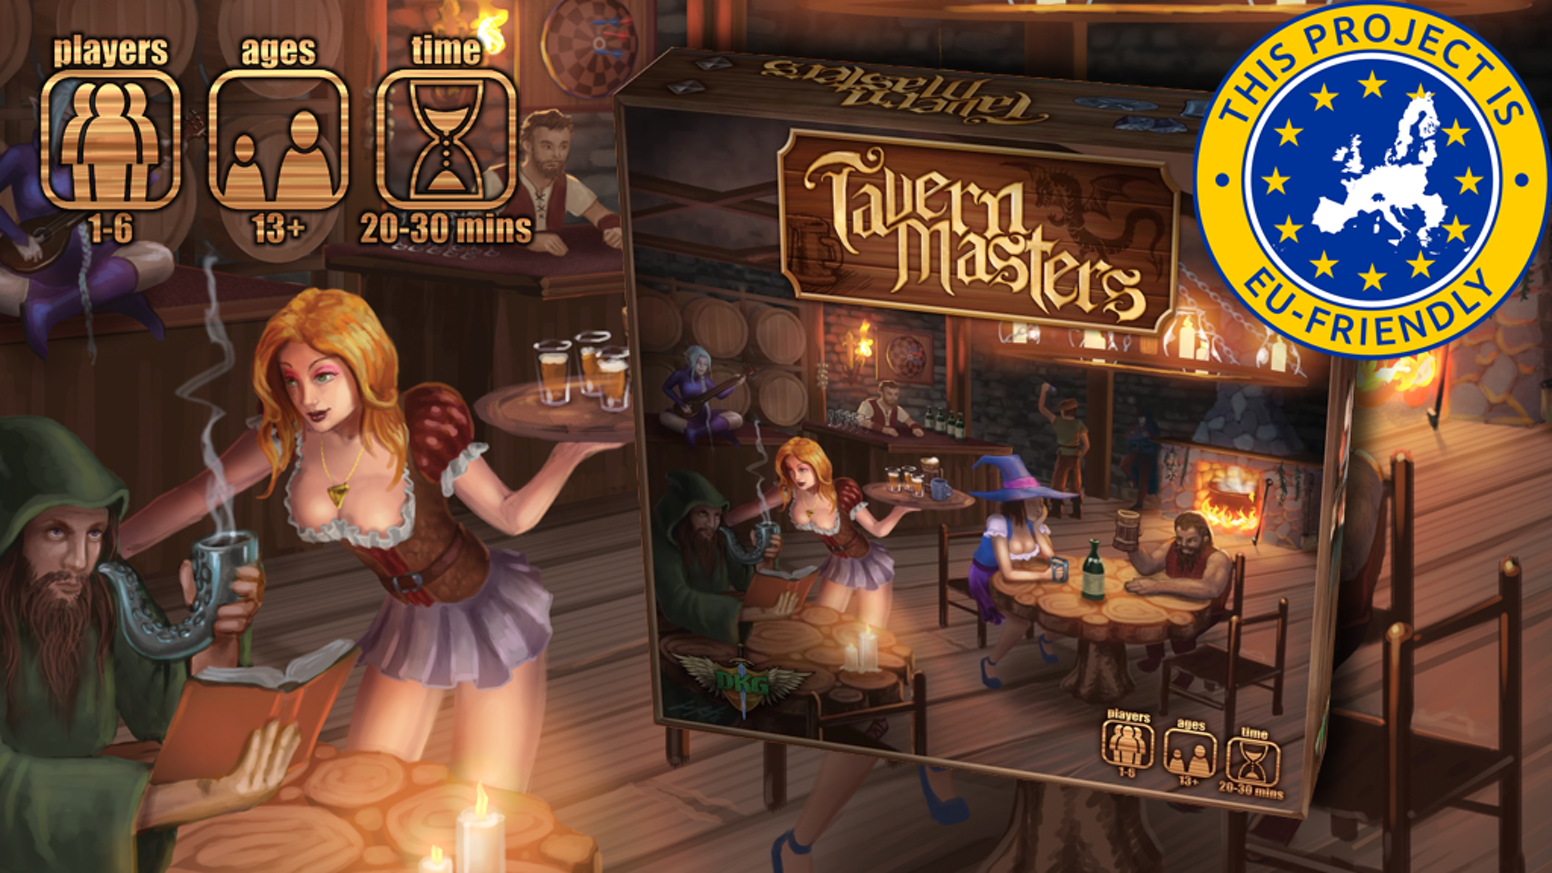 Tavern Masters Card Game - Run the best fantasy tavern in the village! Entertain the patrons! Earn the gold! Awesome new game from DKG! Now Available In Game Stores World-Wide! The Tavern is open!